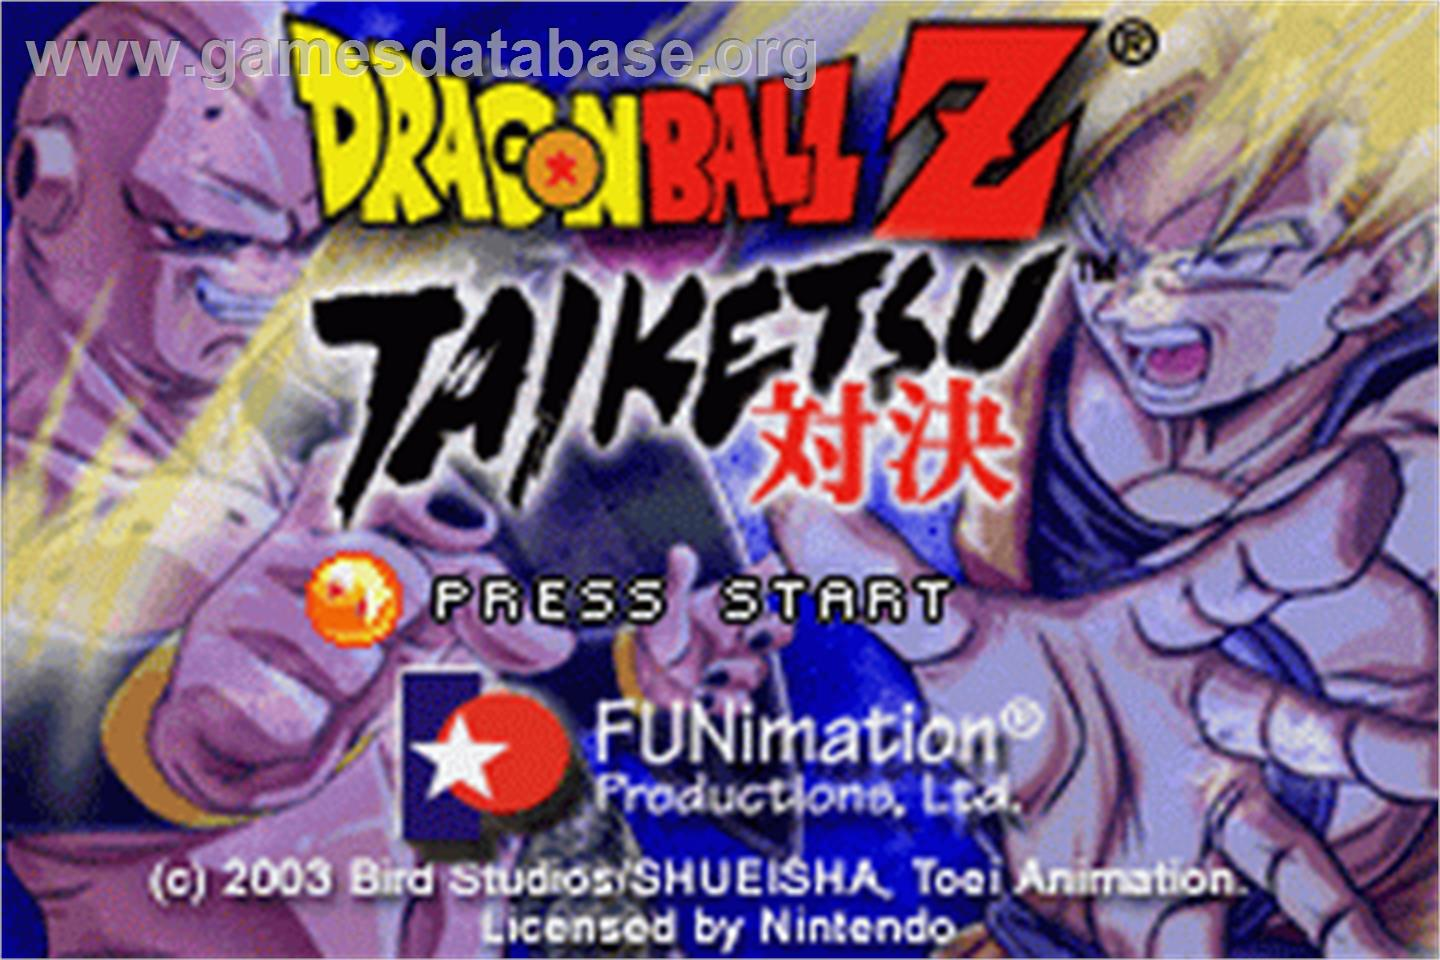 Dragonball Z: Taiketsu - Nintendo Game Boy Advance - Artwork - Title Screen